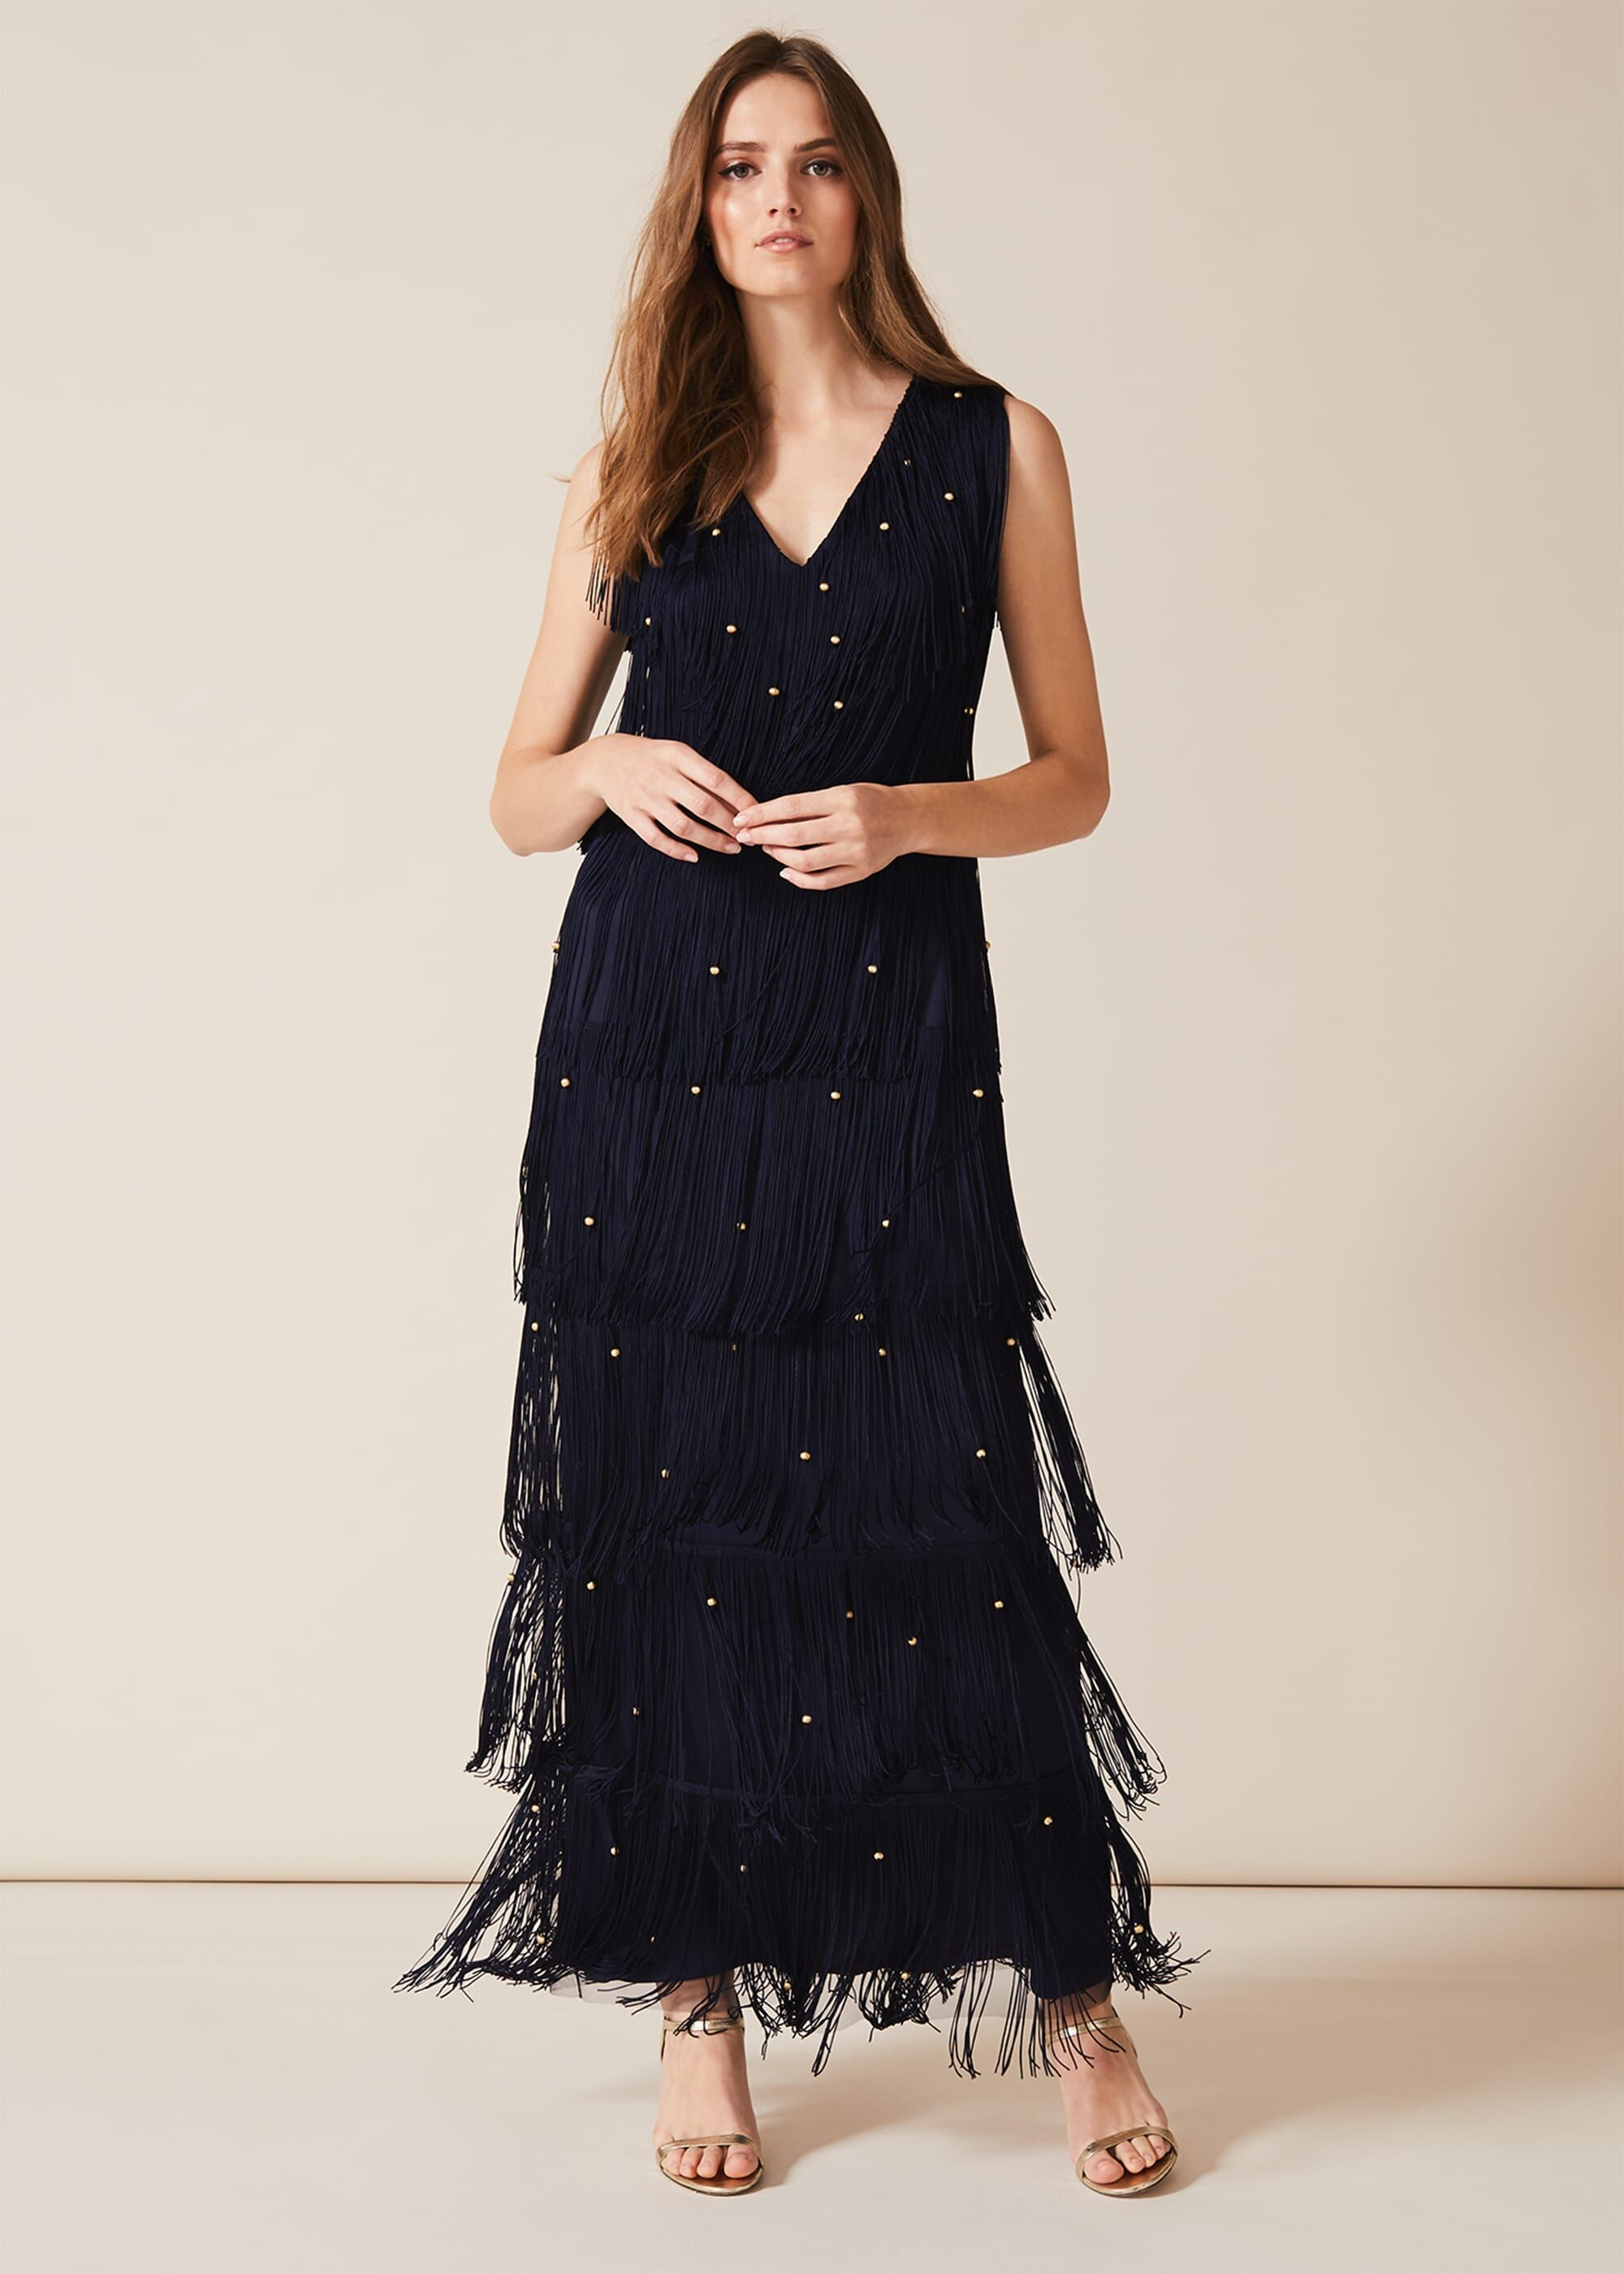 1920s dresses uk with images 1920s fashion dresses